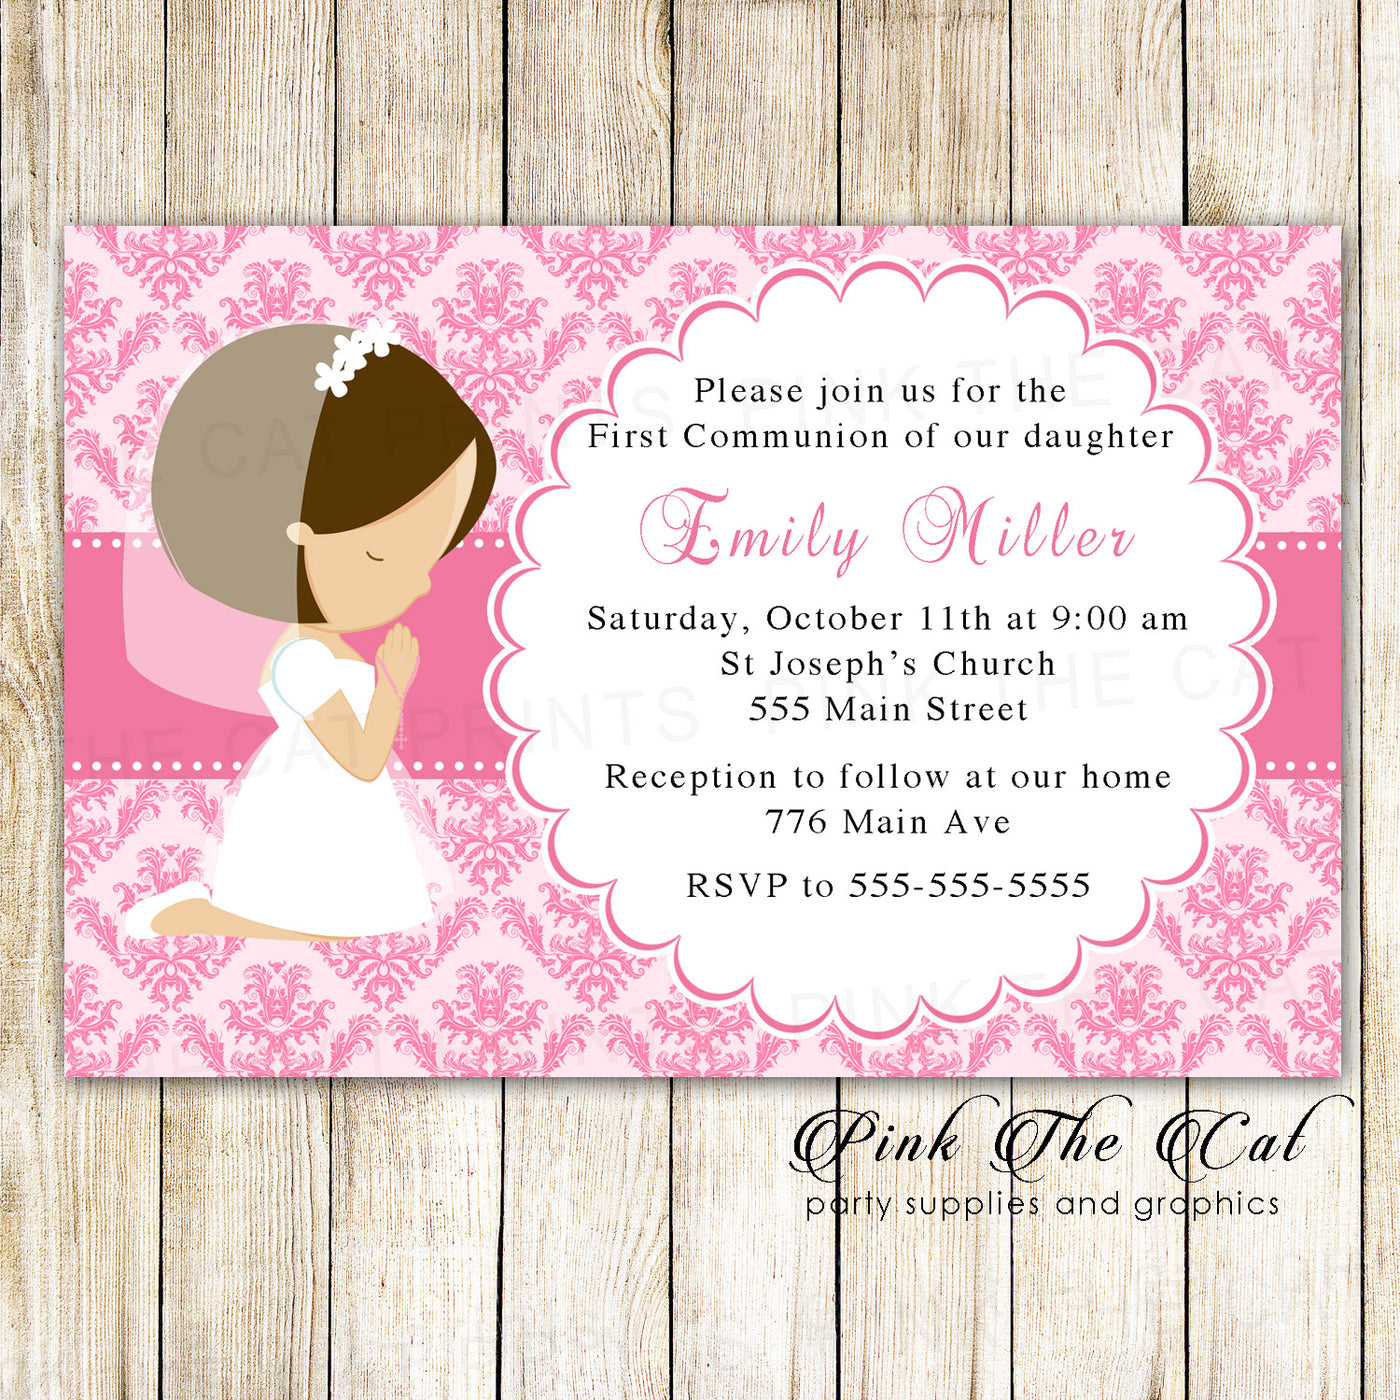 Christening Holy Communion Confirmation Pink Blue Boy Girl Party Supplies